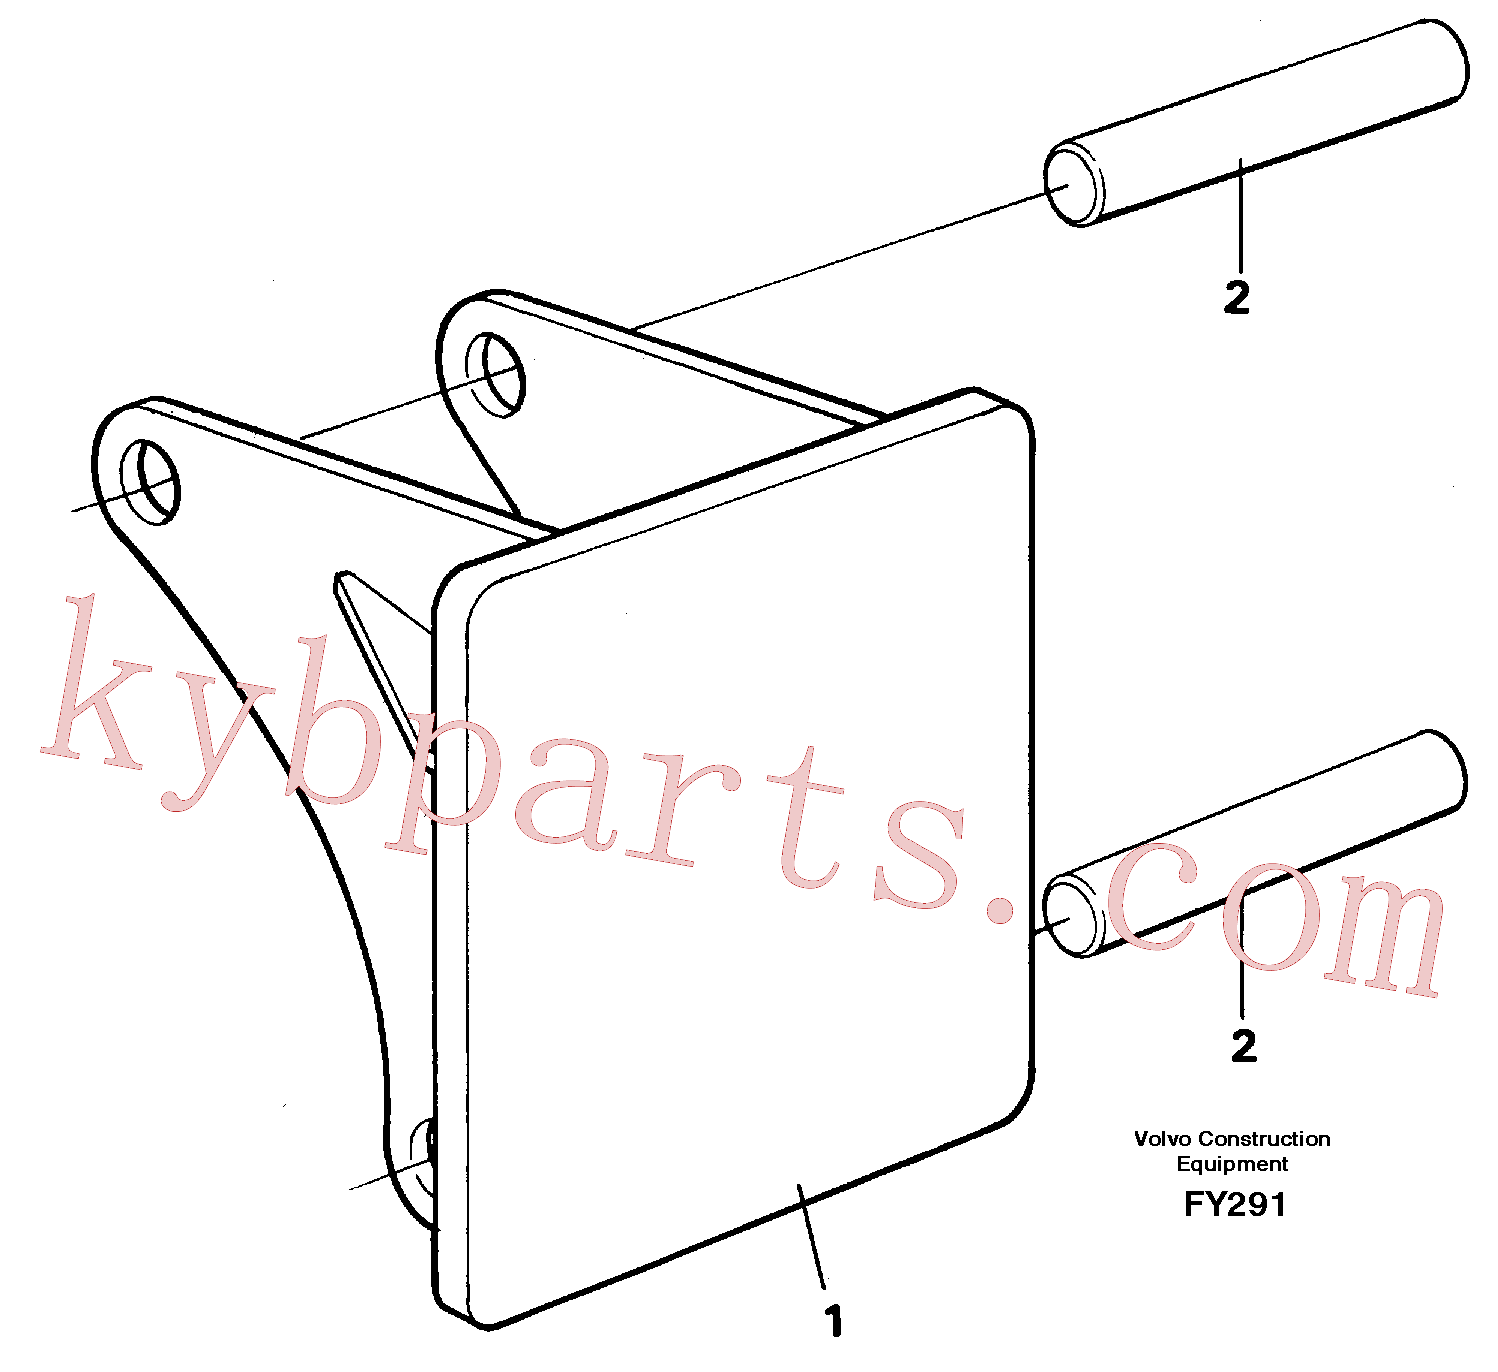 VOE14260983 for Volvo Hammer plate(FY291 assembly)